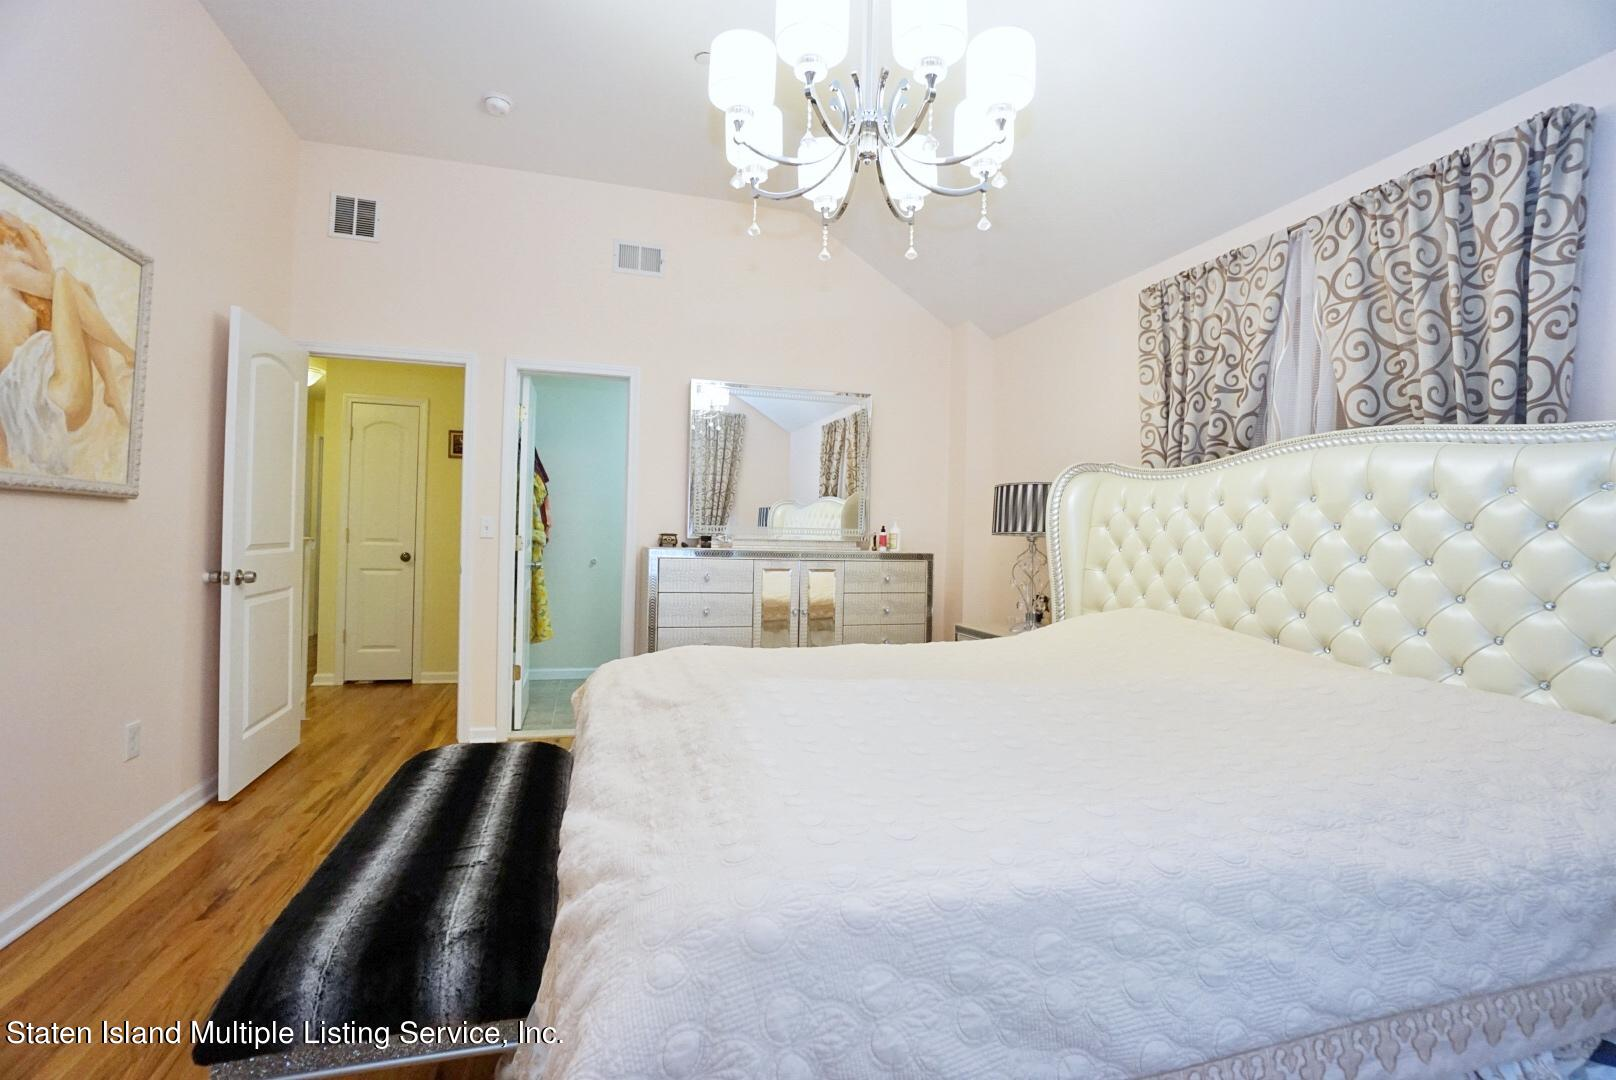 Single Family - Detached 171 Benziger Avenue  Staten Island, NY 10301, MLS-1145235-21